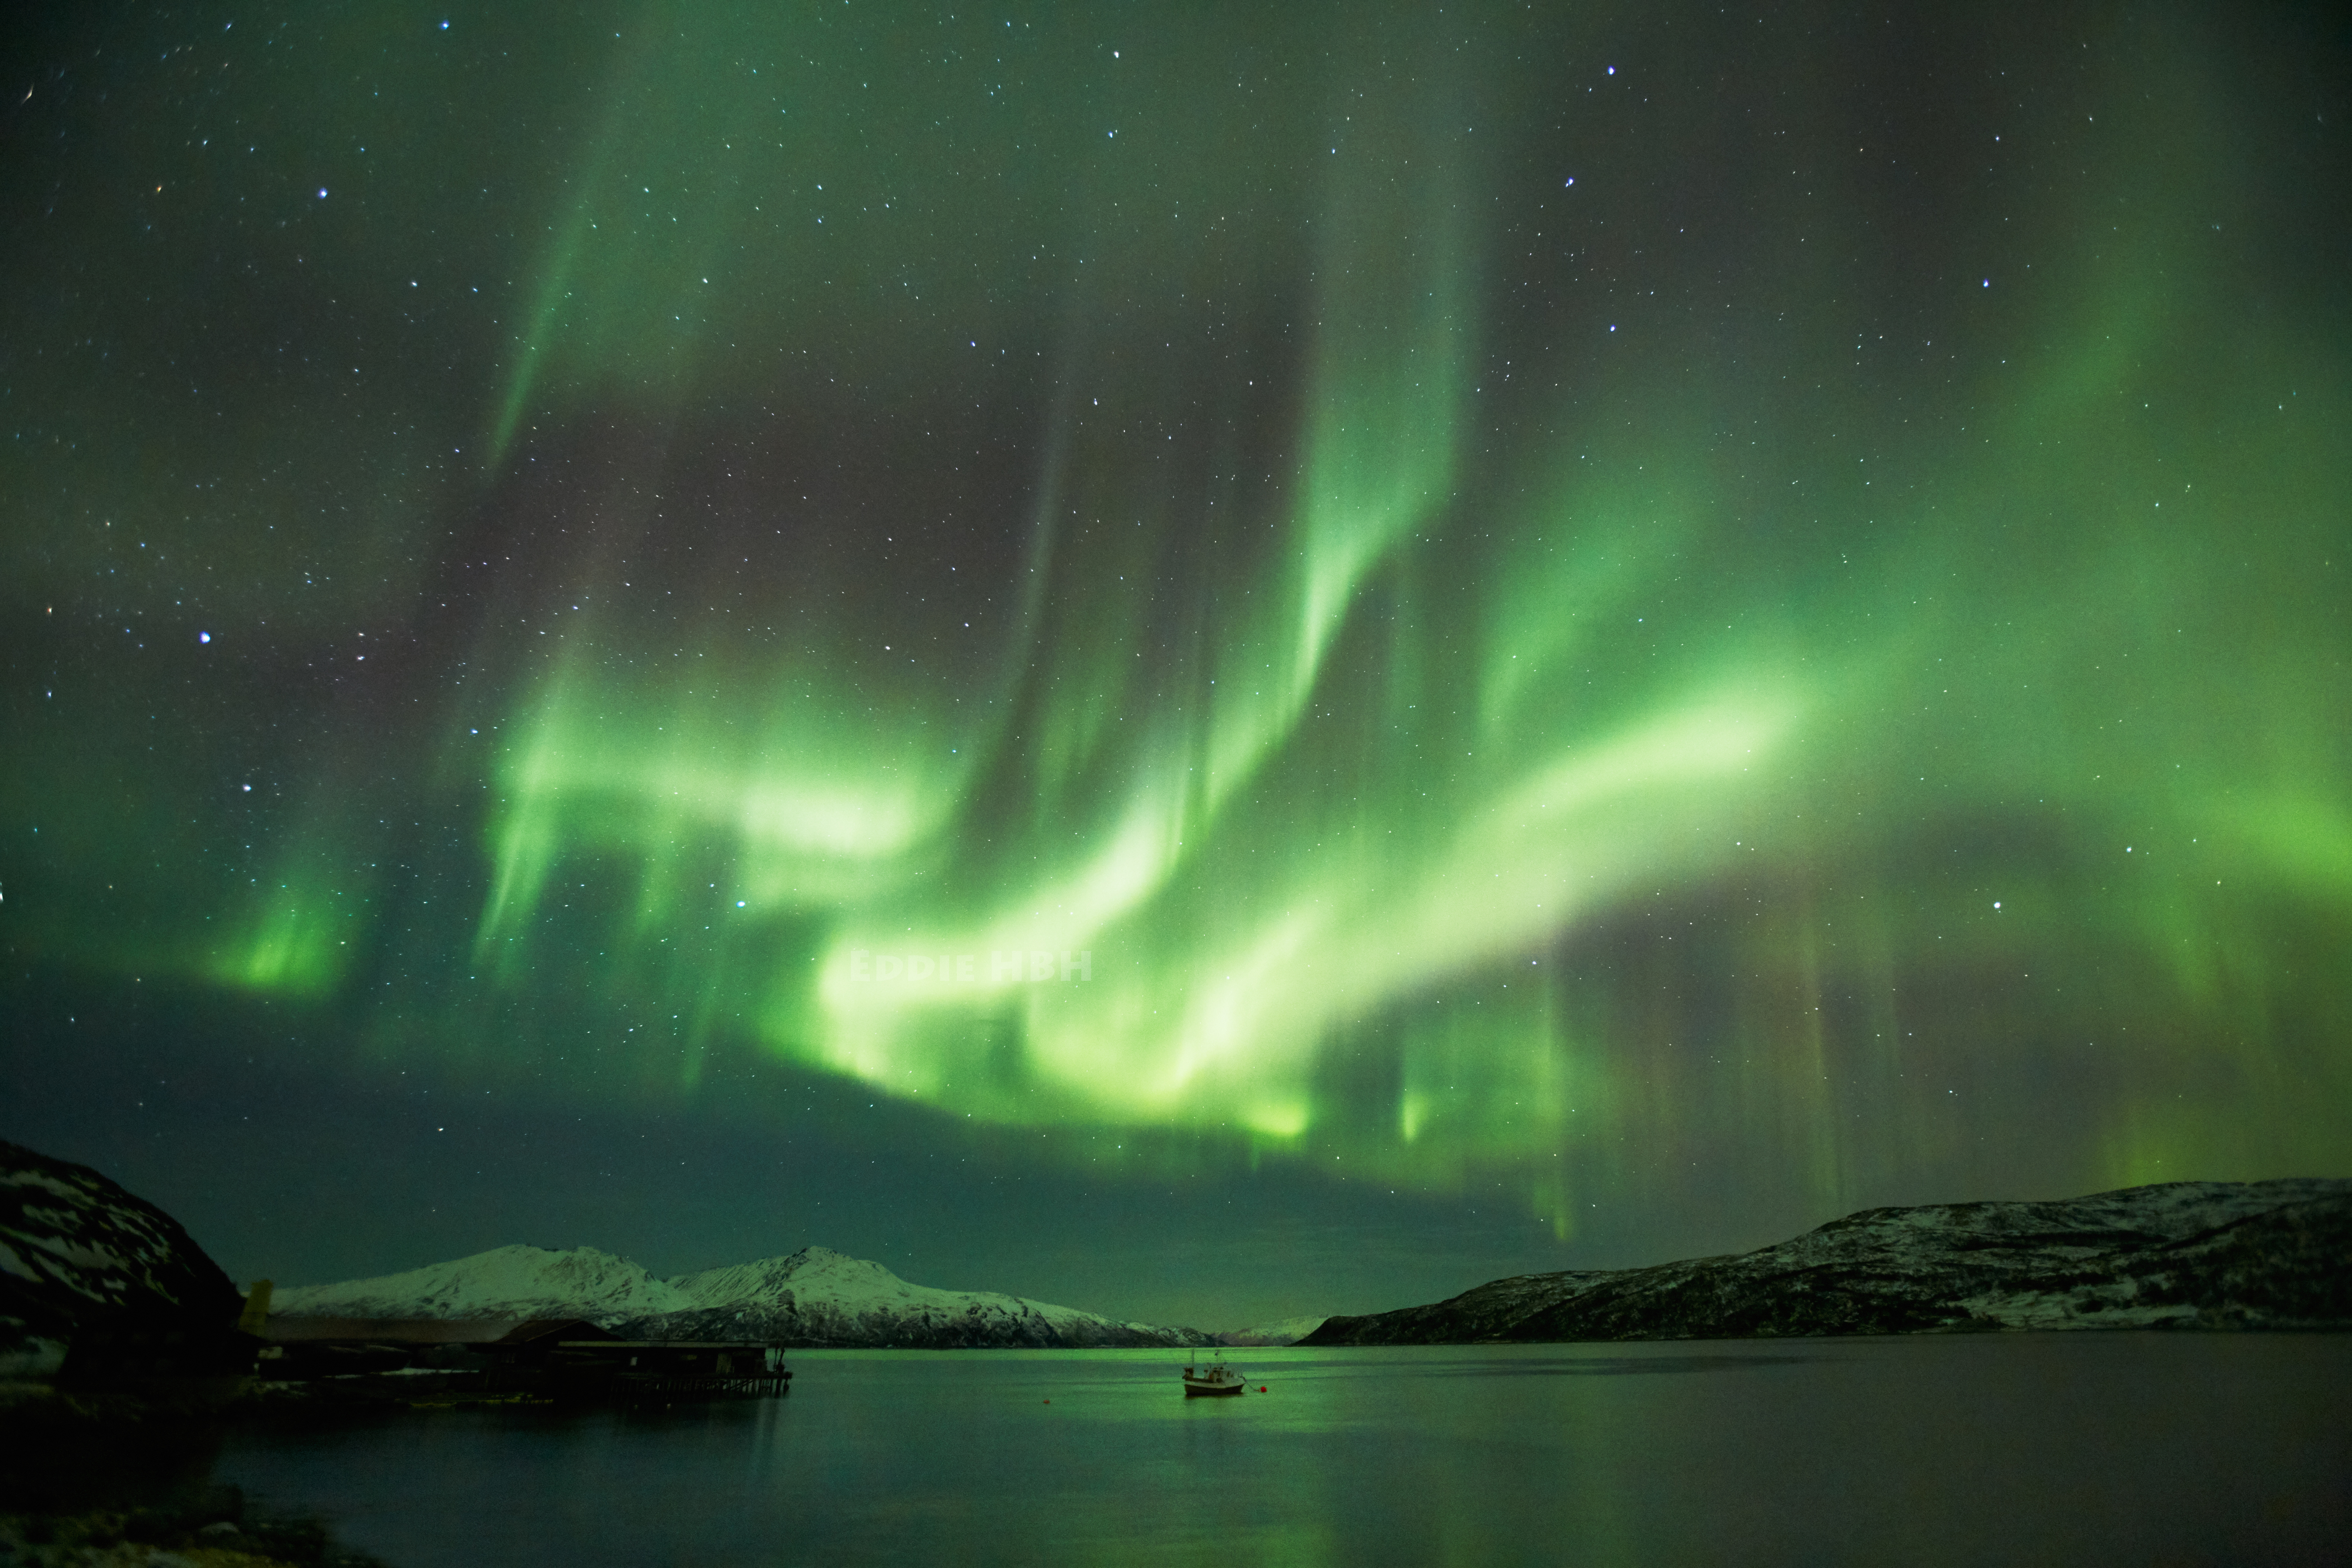 Lonely boat in the middle of a show of Northern Lights